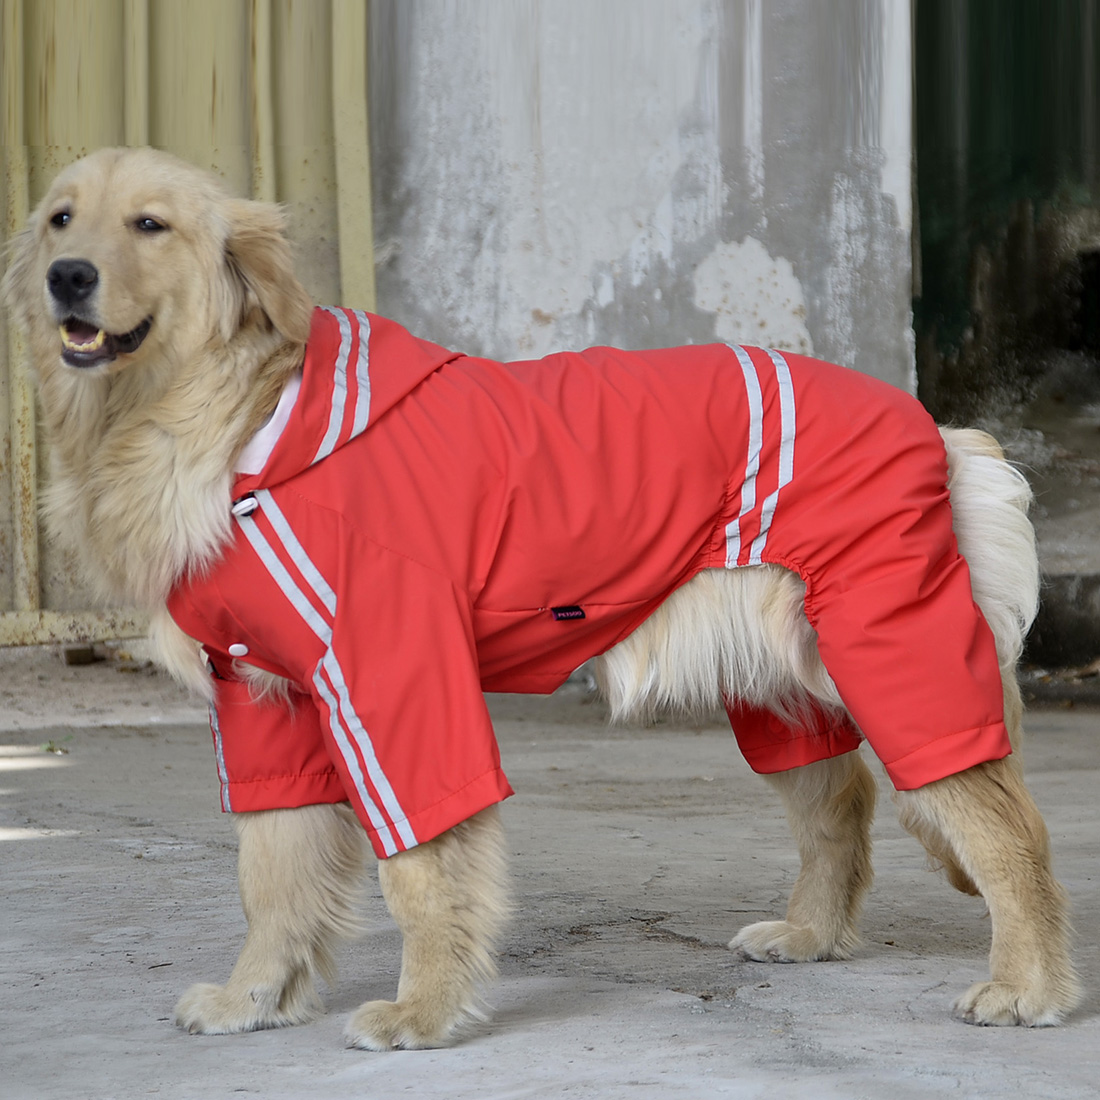 Raincoat For Dogs Waterproof Dog Coat Reflective Dog Raincoat Clothes For Large Dogs Labrador 3XL-7XL 4 Colors